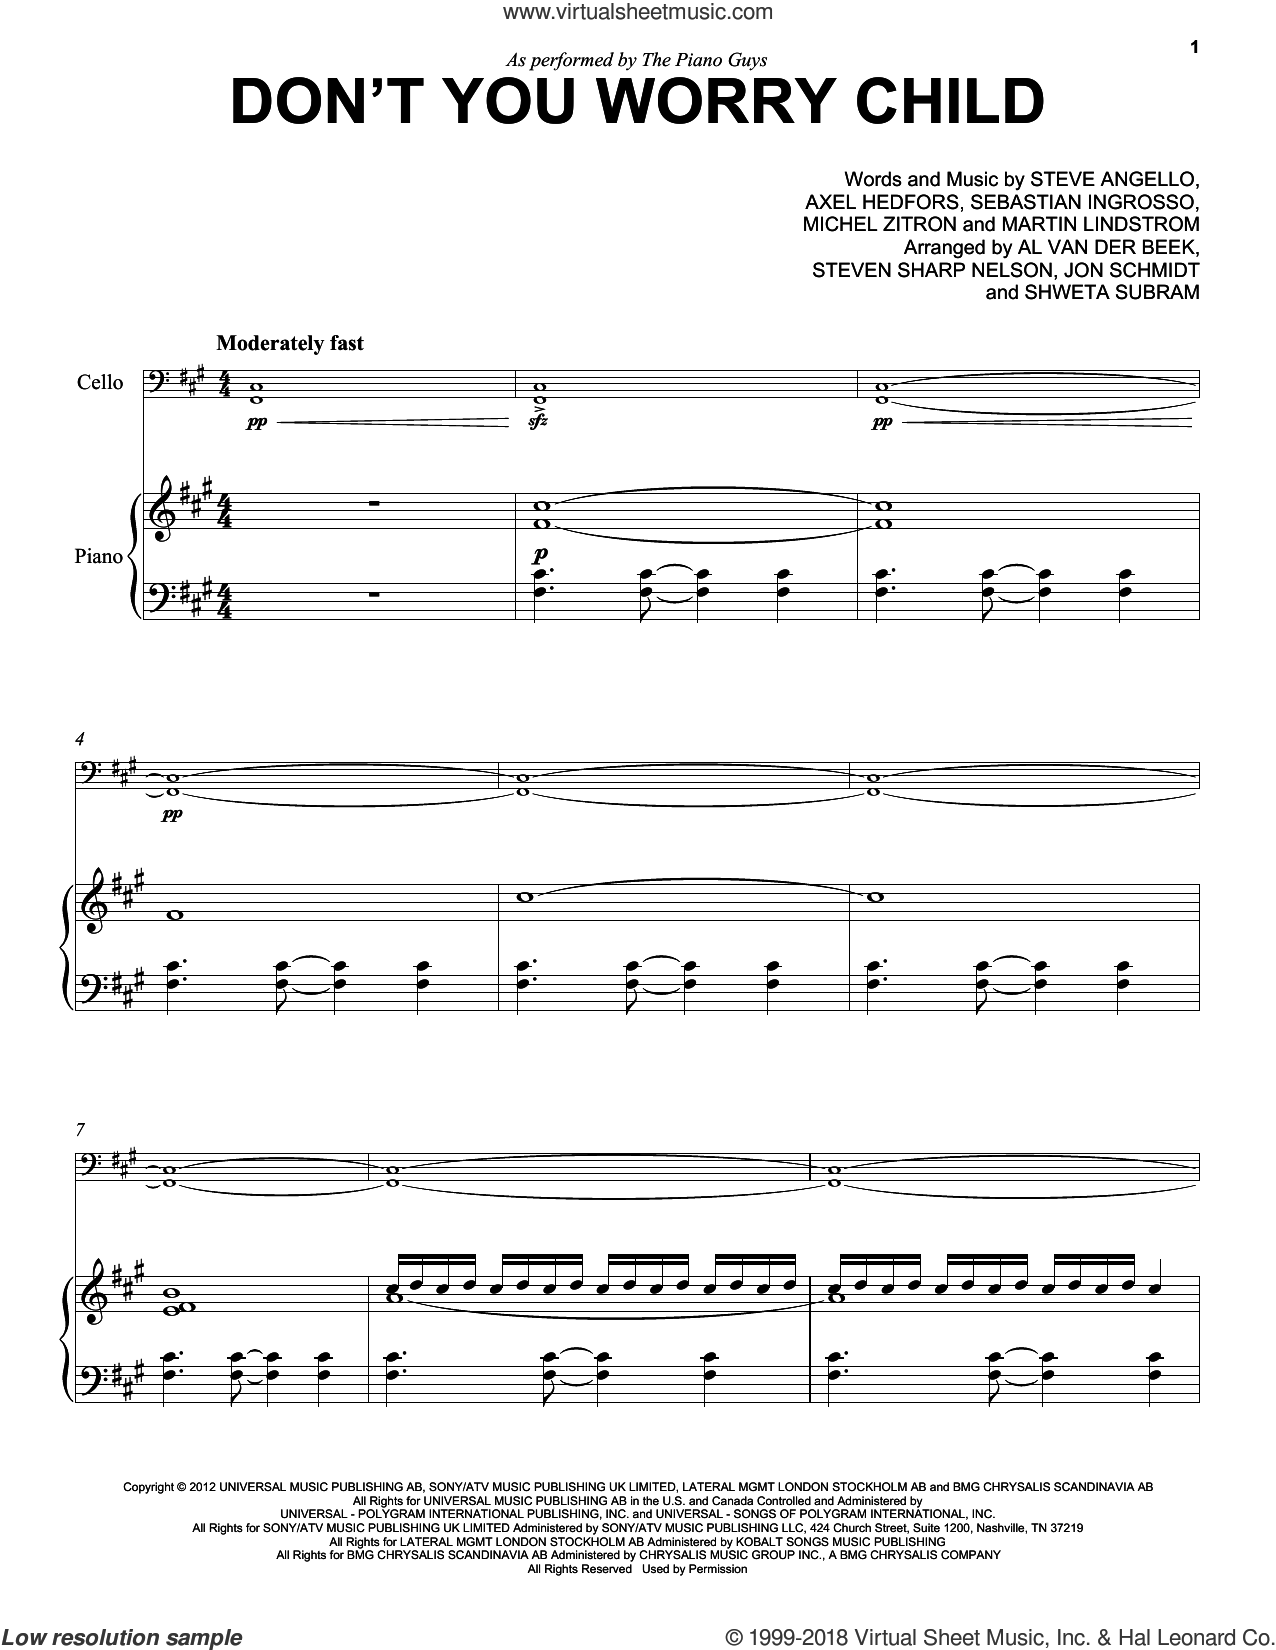 Don't You Worry Child sheet music for cello and piano by The Piano Guys, Swedish House Mafia featuring John Martin, Axel Hedfors, Martin Lindstrom, Michel Zitron, Sebastian Ingrosso and Steve Angello, intermediate skill level